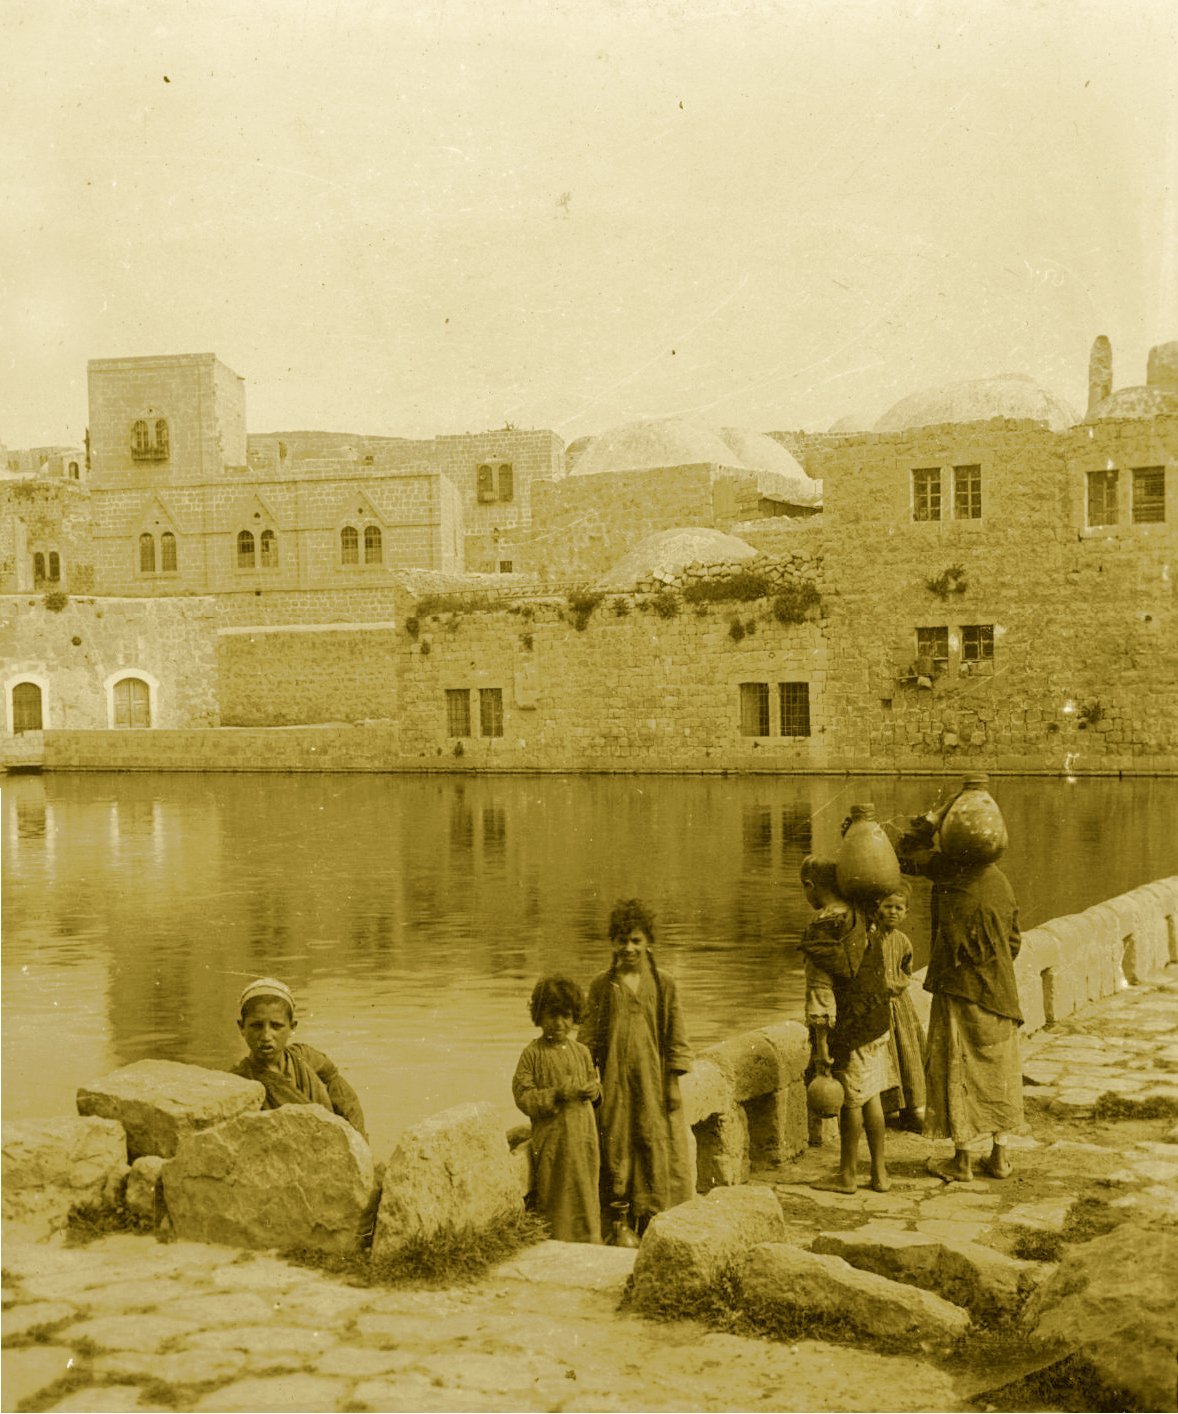 Hebron - الخليل : Hebron - Late 19th, early 20th c. - 61 - Birket Al-Sultan